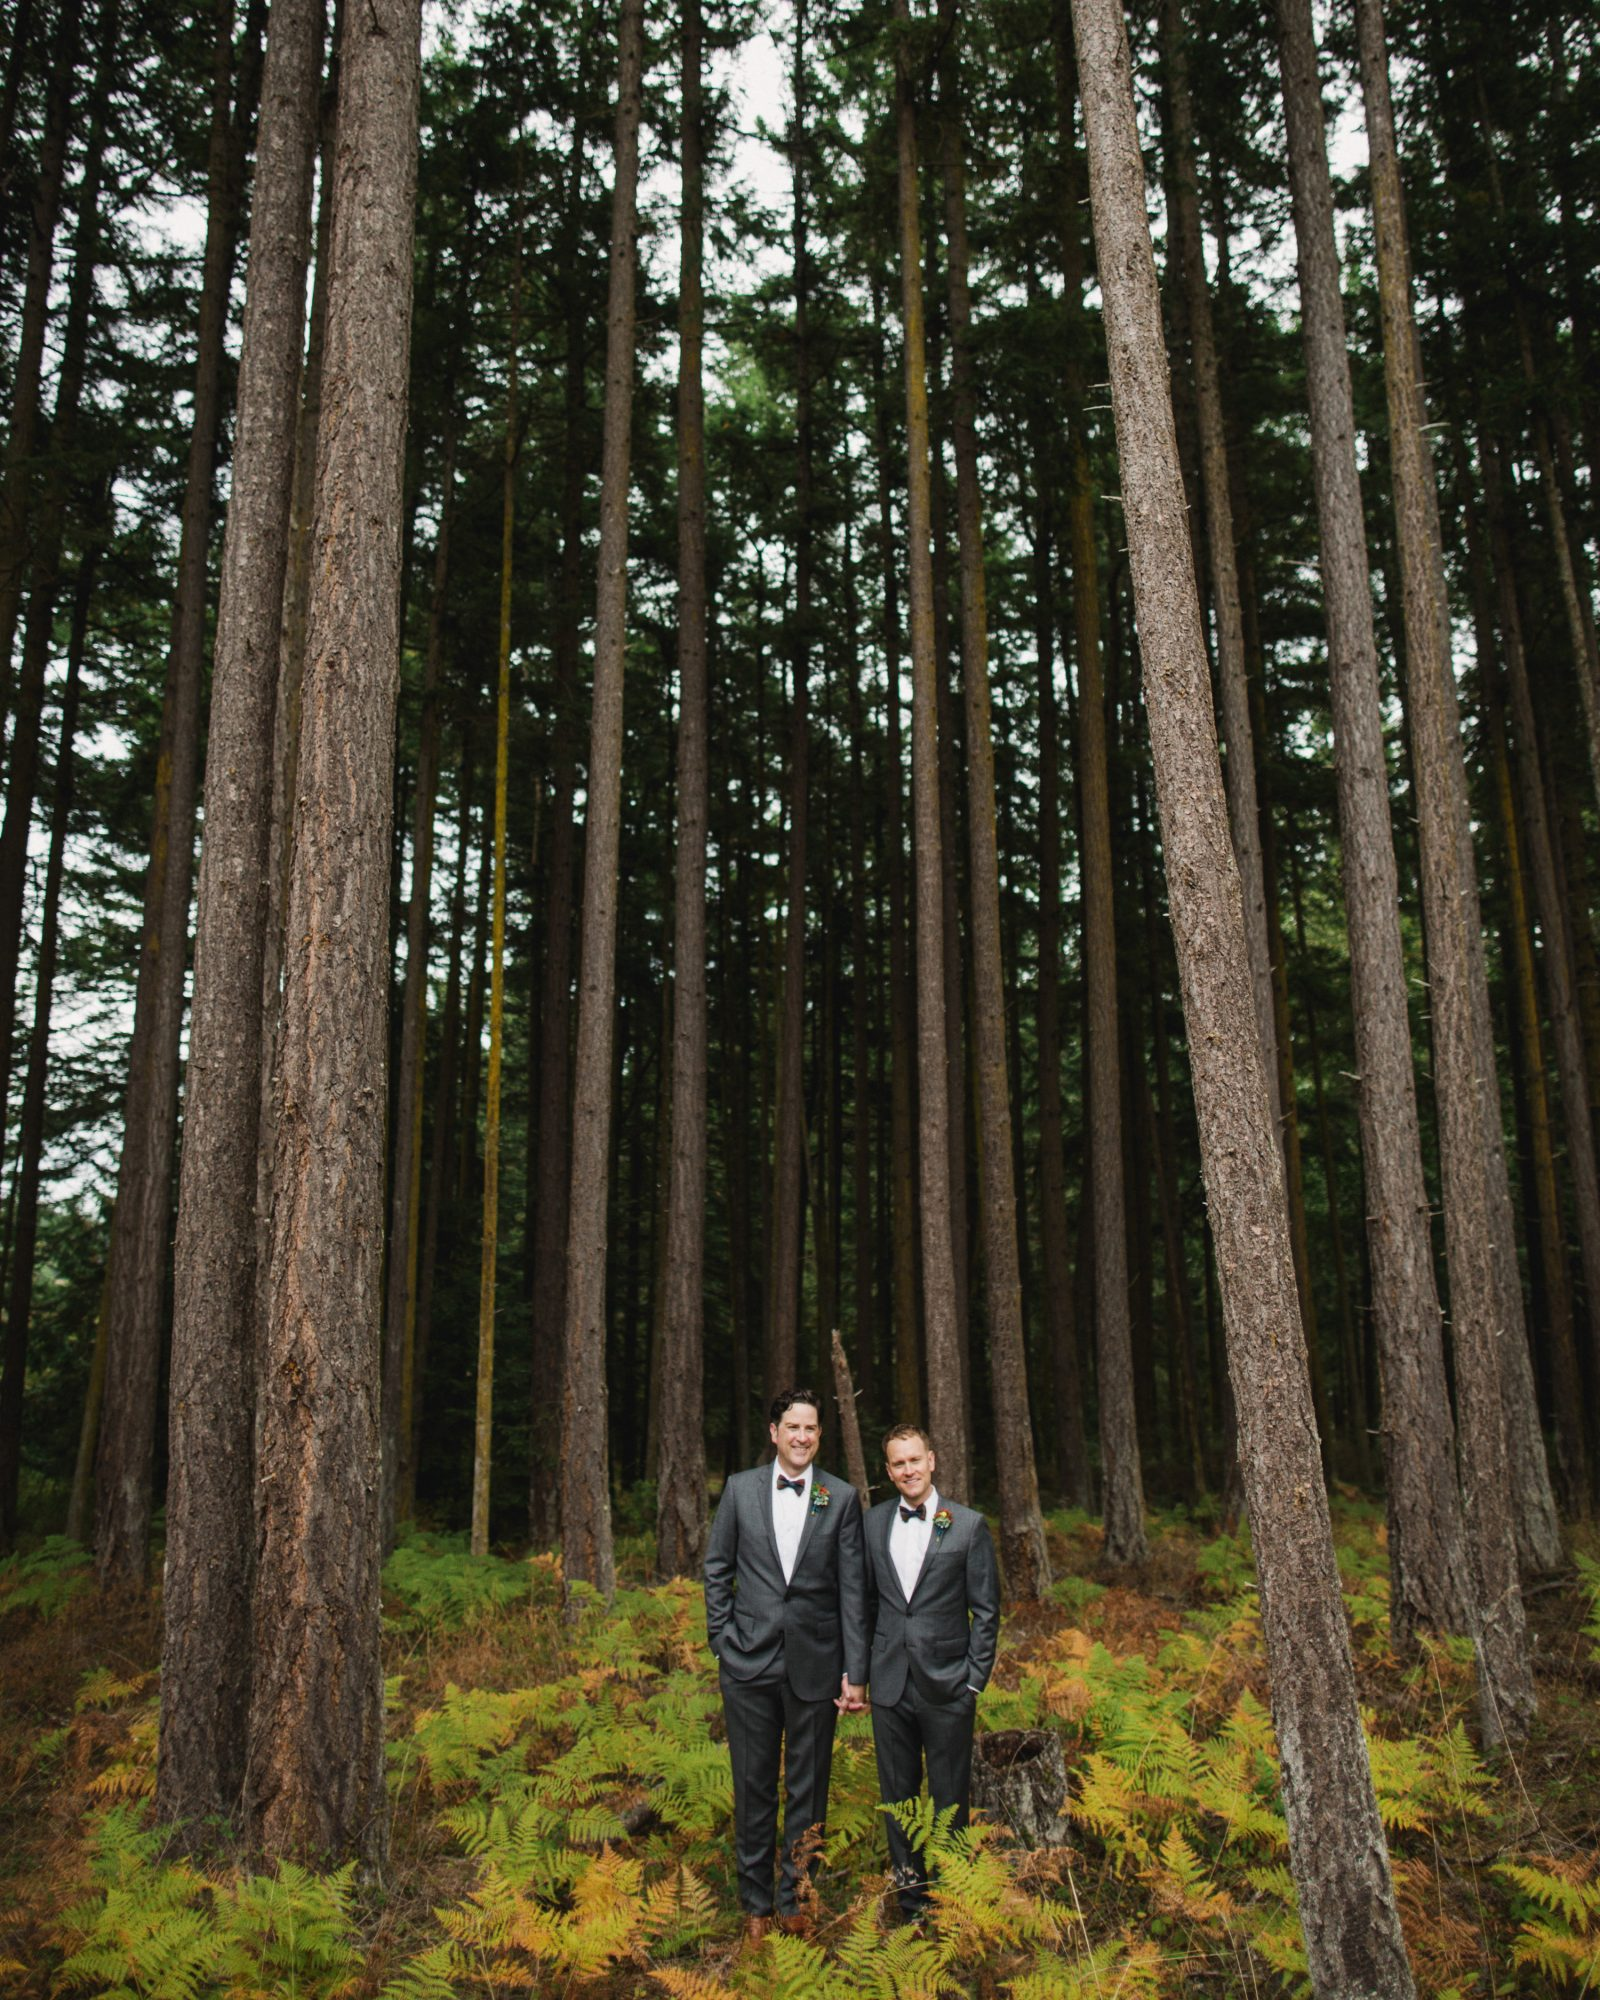 craig-andrew-wedding-couple-065-s111833-0215.jpg